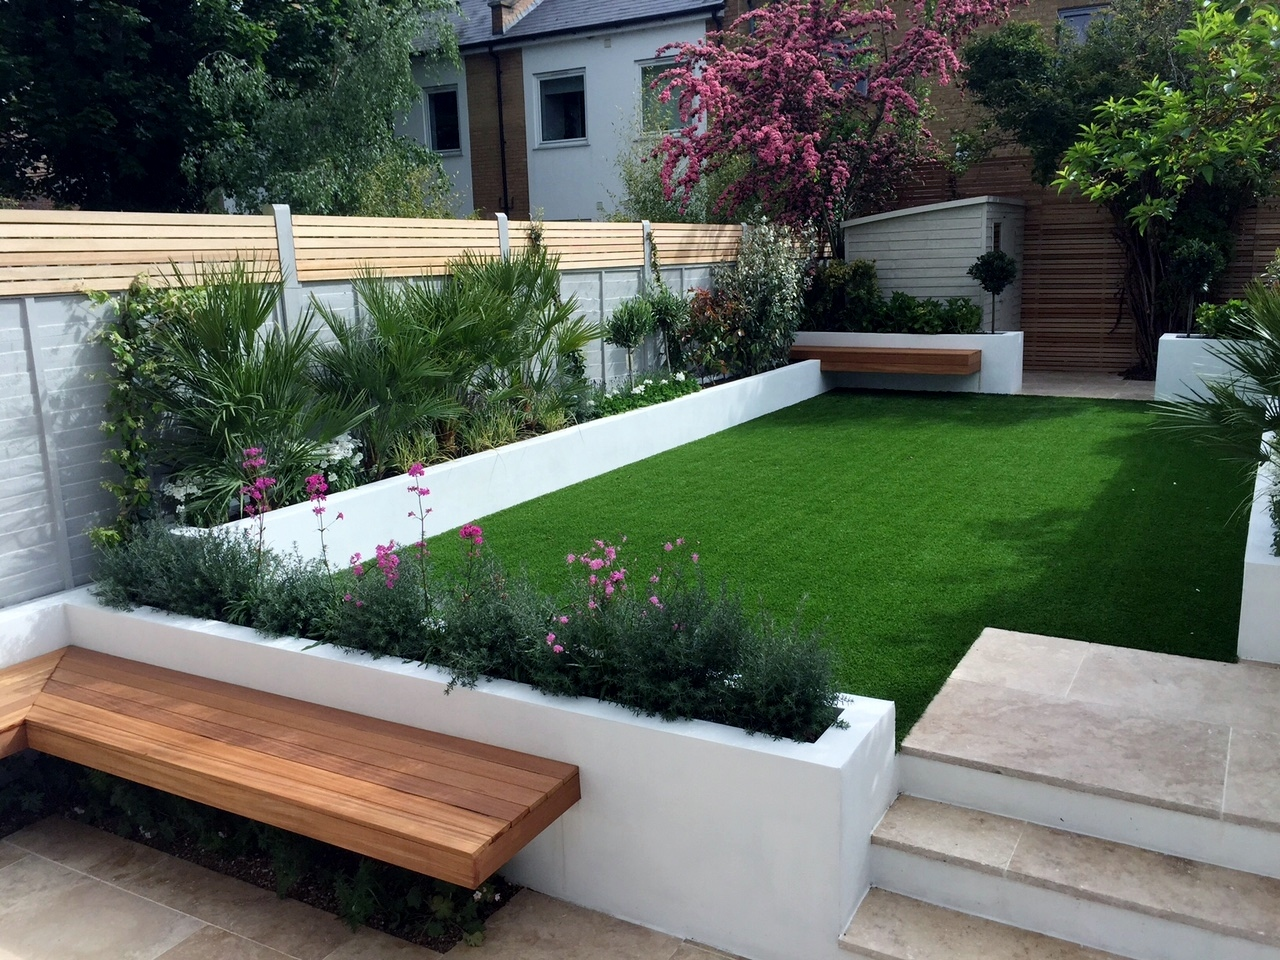 Modern garden design ideas Fulham Chelsea Battersea ... on Landscape Design Ideas  id=13388